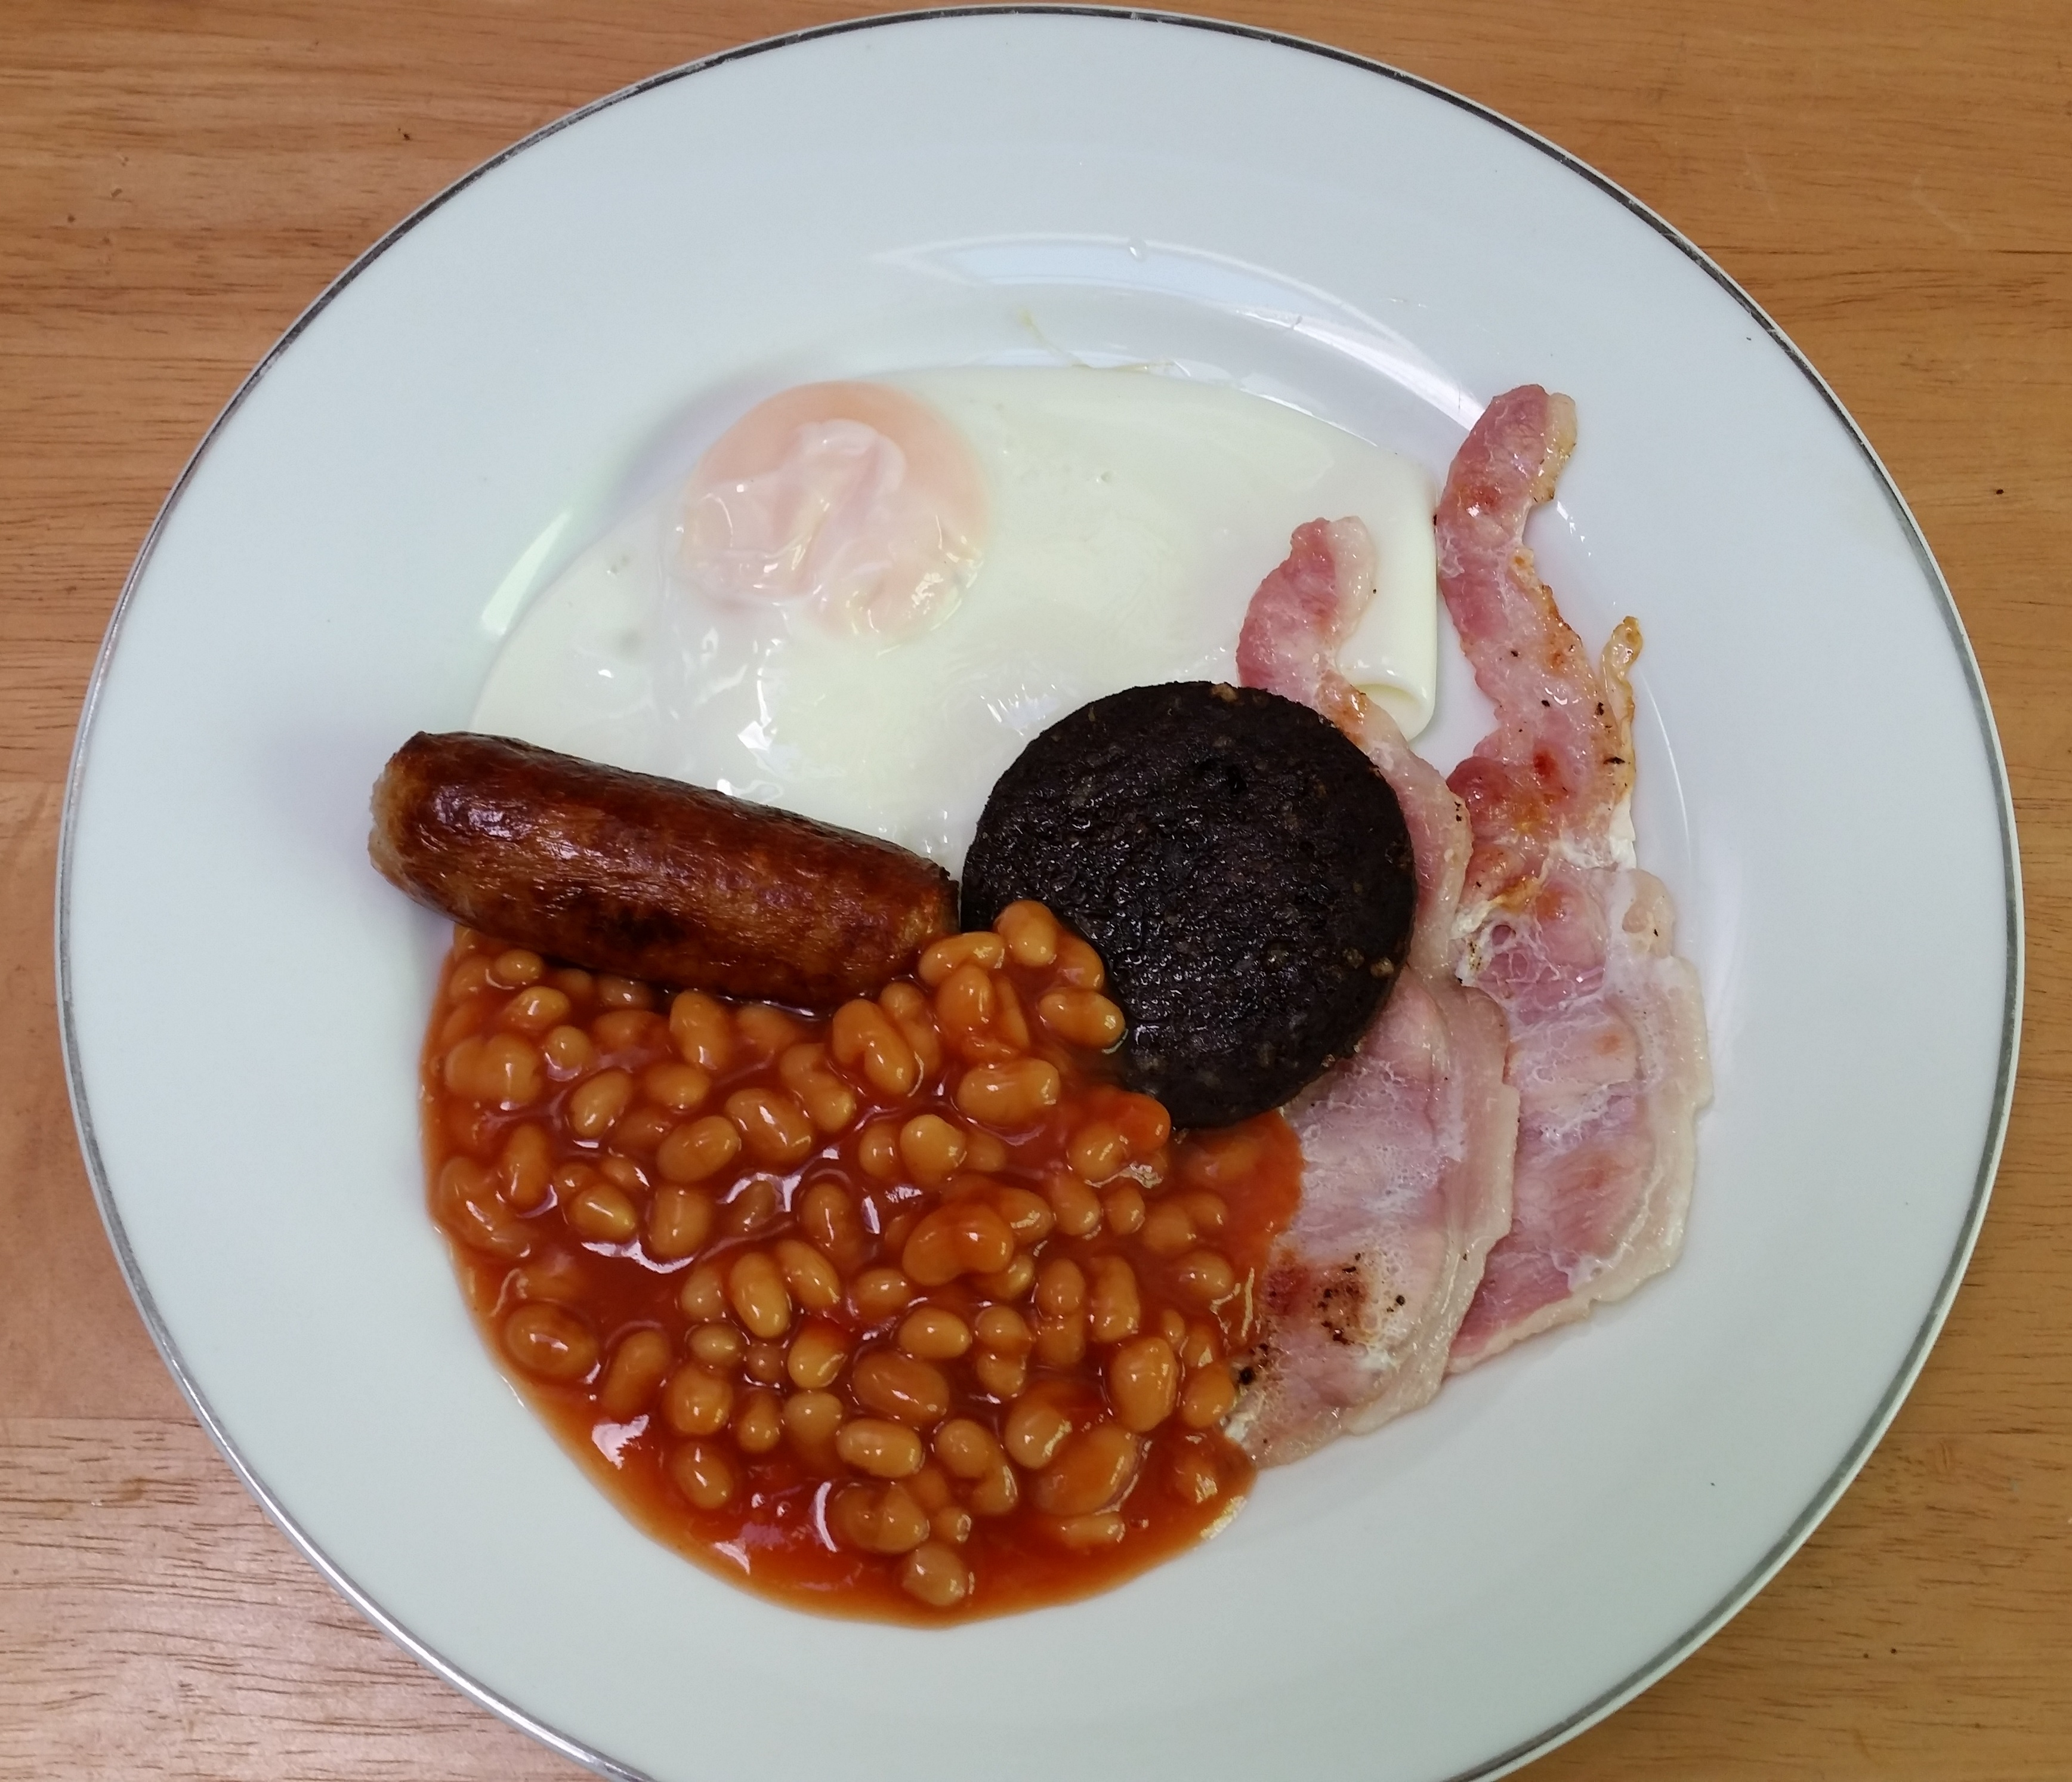 Fried Egg Black Pudding Grilled Bacon Baked Beans Sausage Large